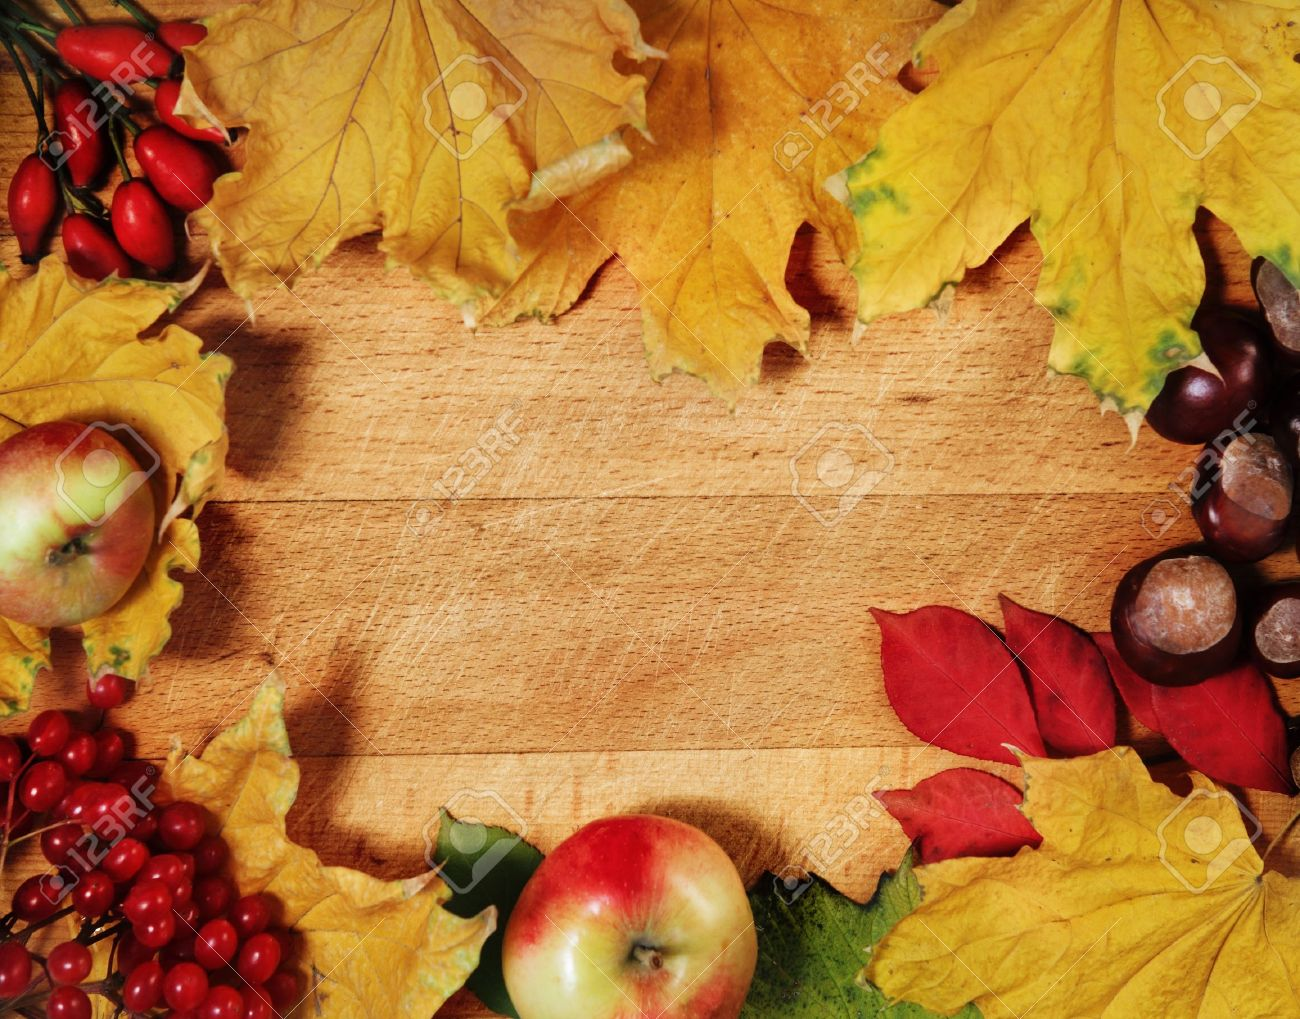 Still life with autumn leaves over wooden background Stock Photo - 10114883